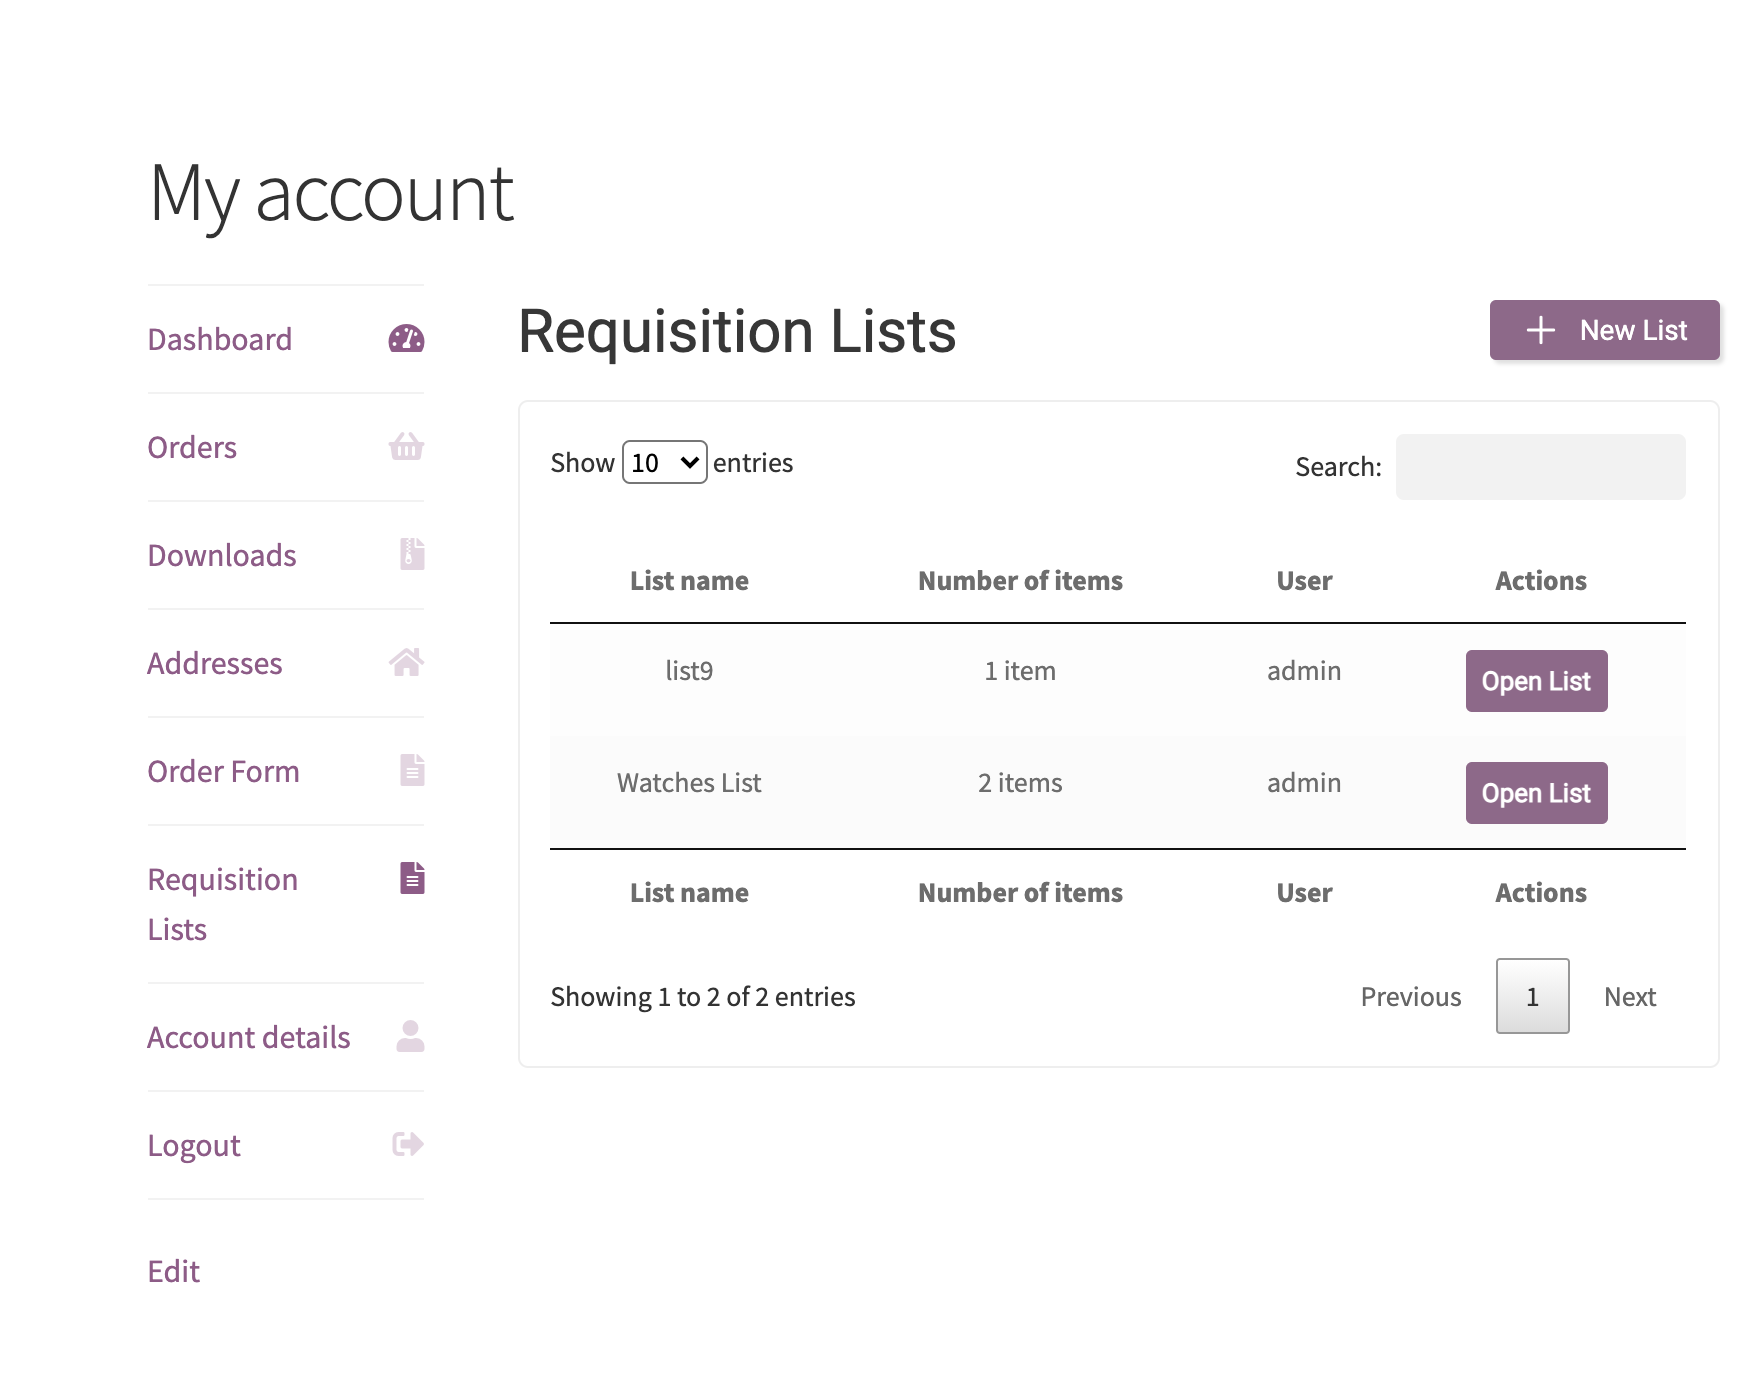 Requisition lists in my account